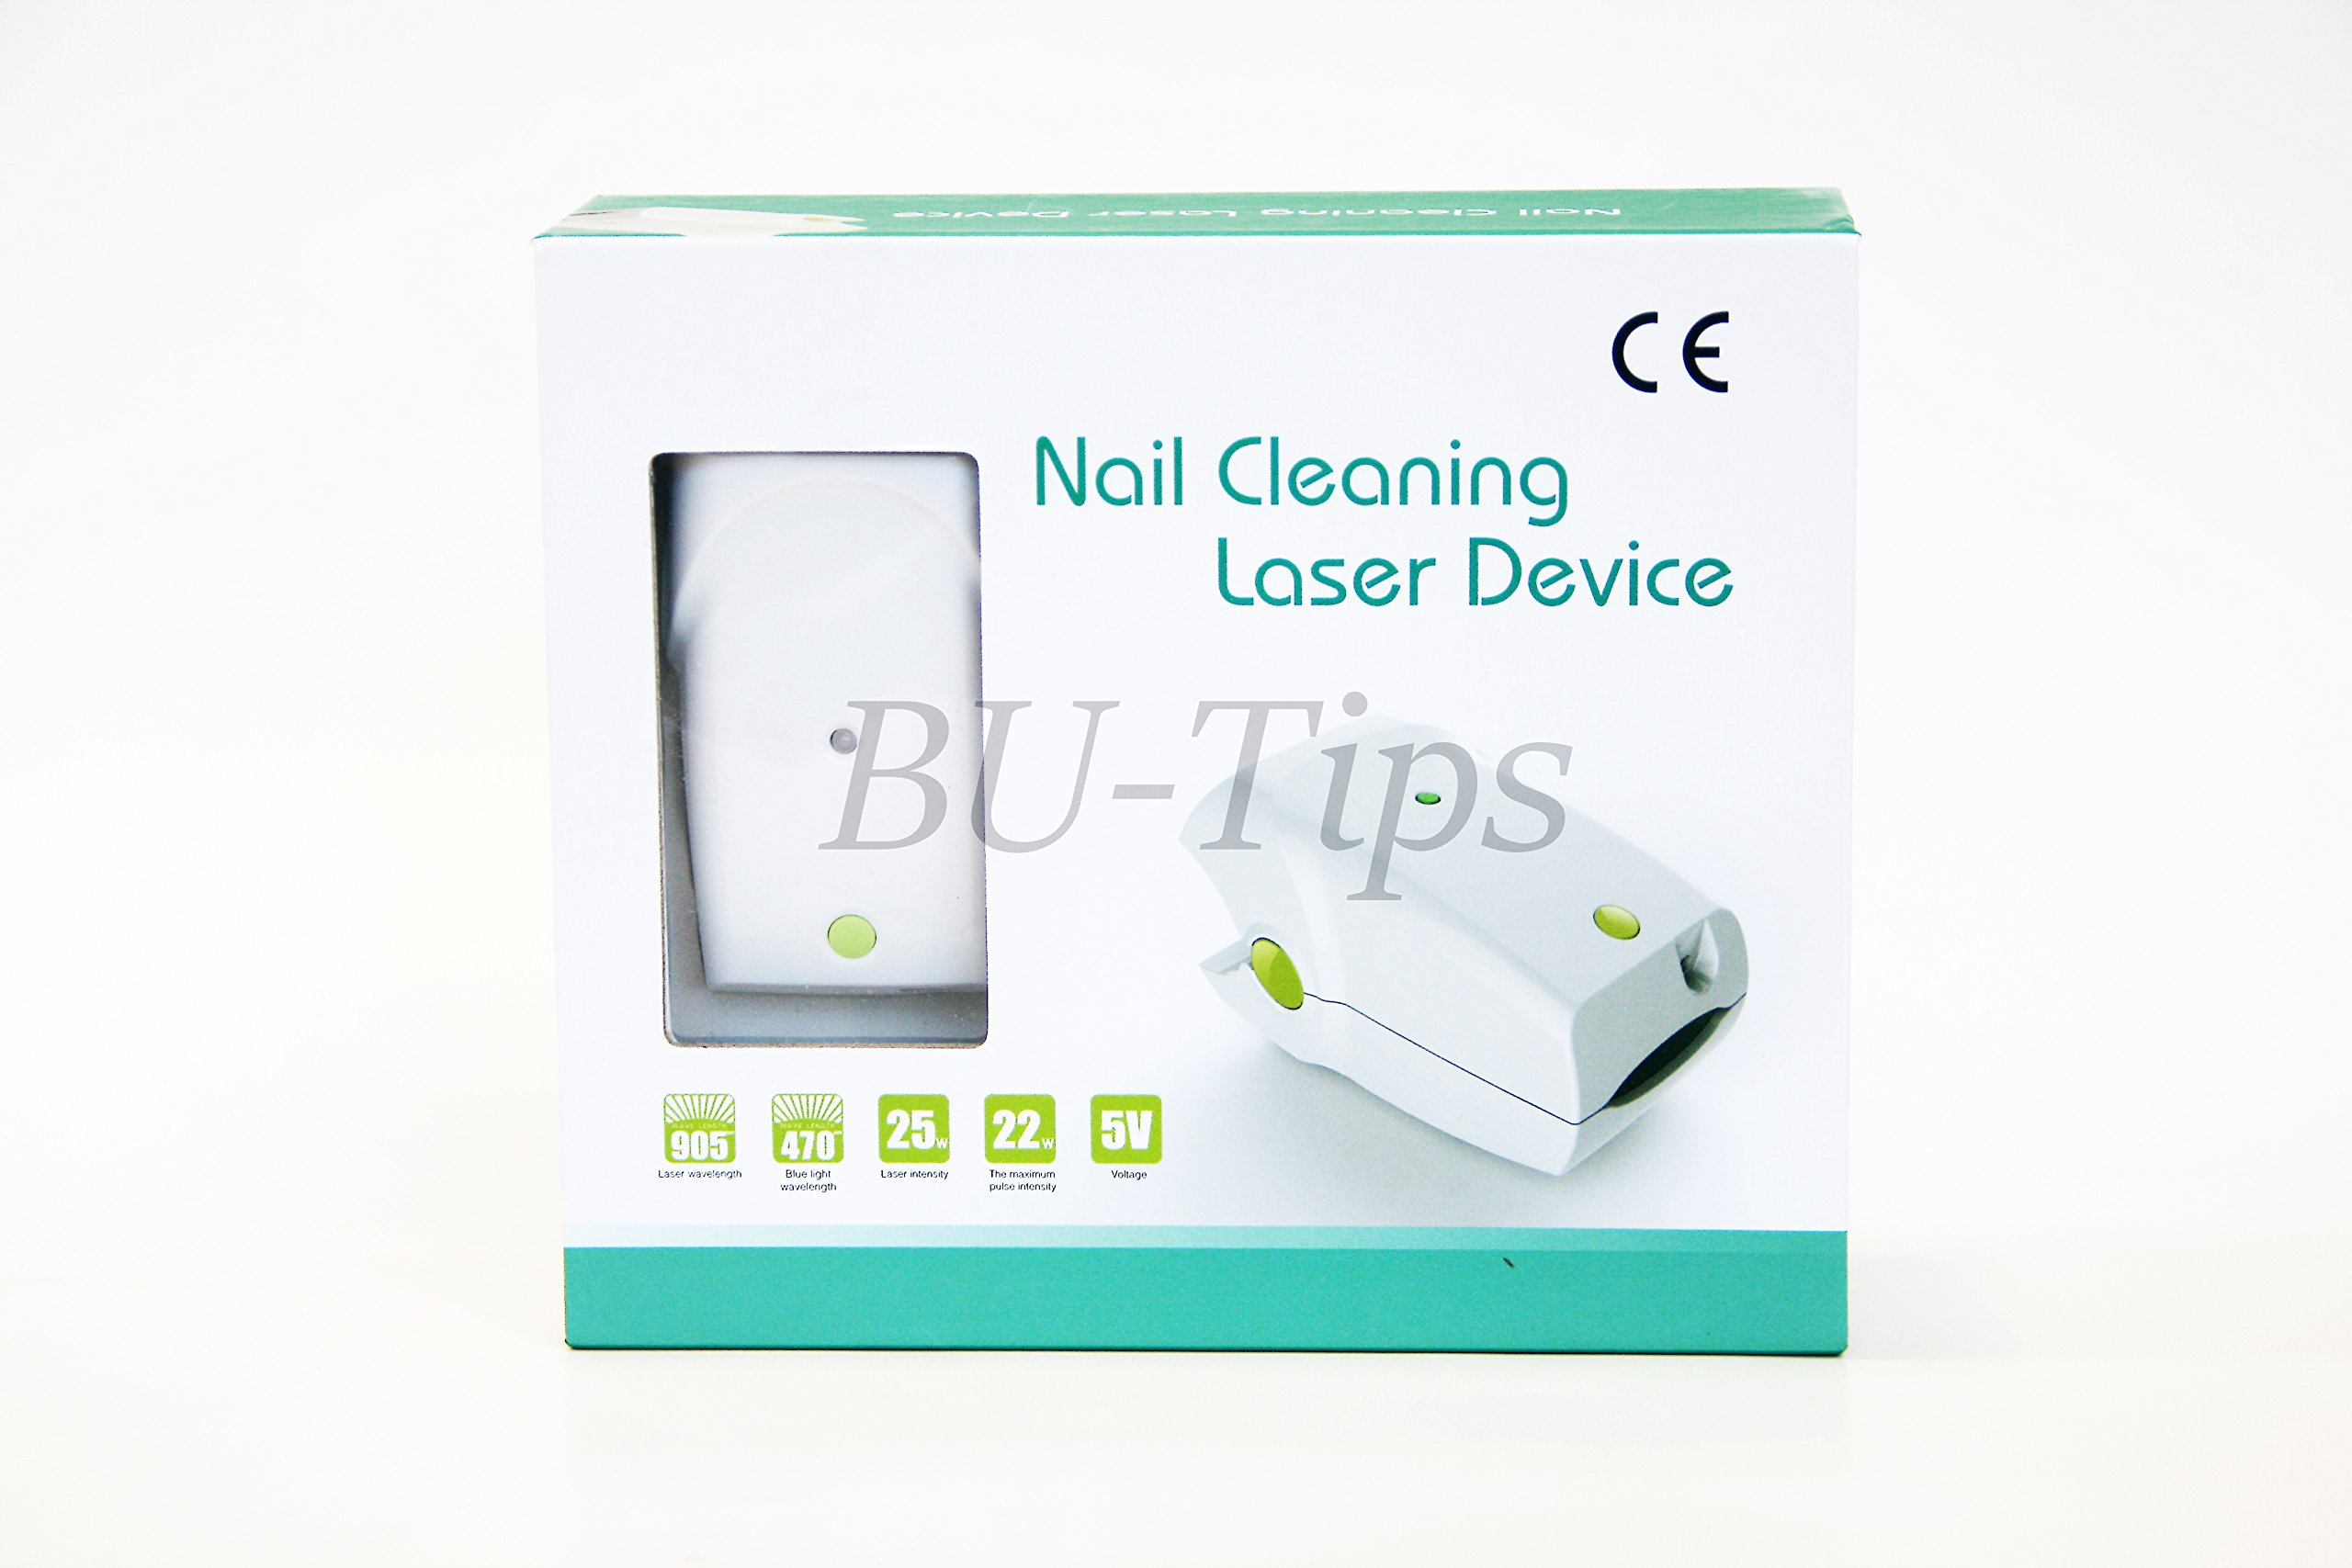 HNC Fungus Treatment Laser Device Revolutionary Home Use Nail-fungus Remover … + Free Ebook